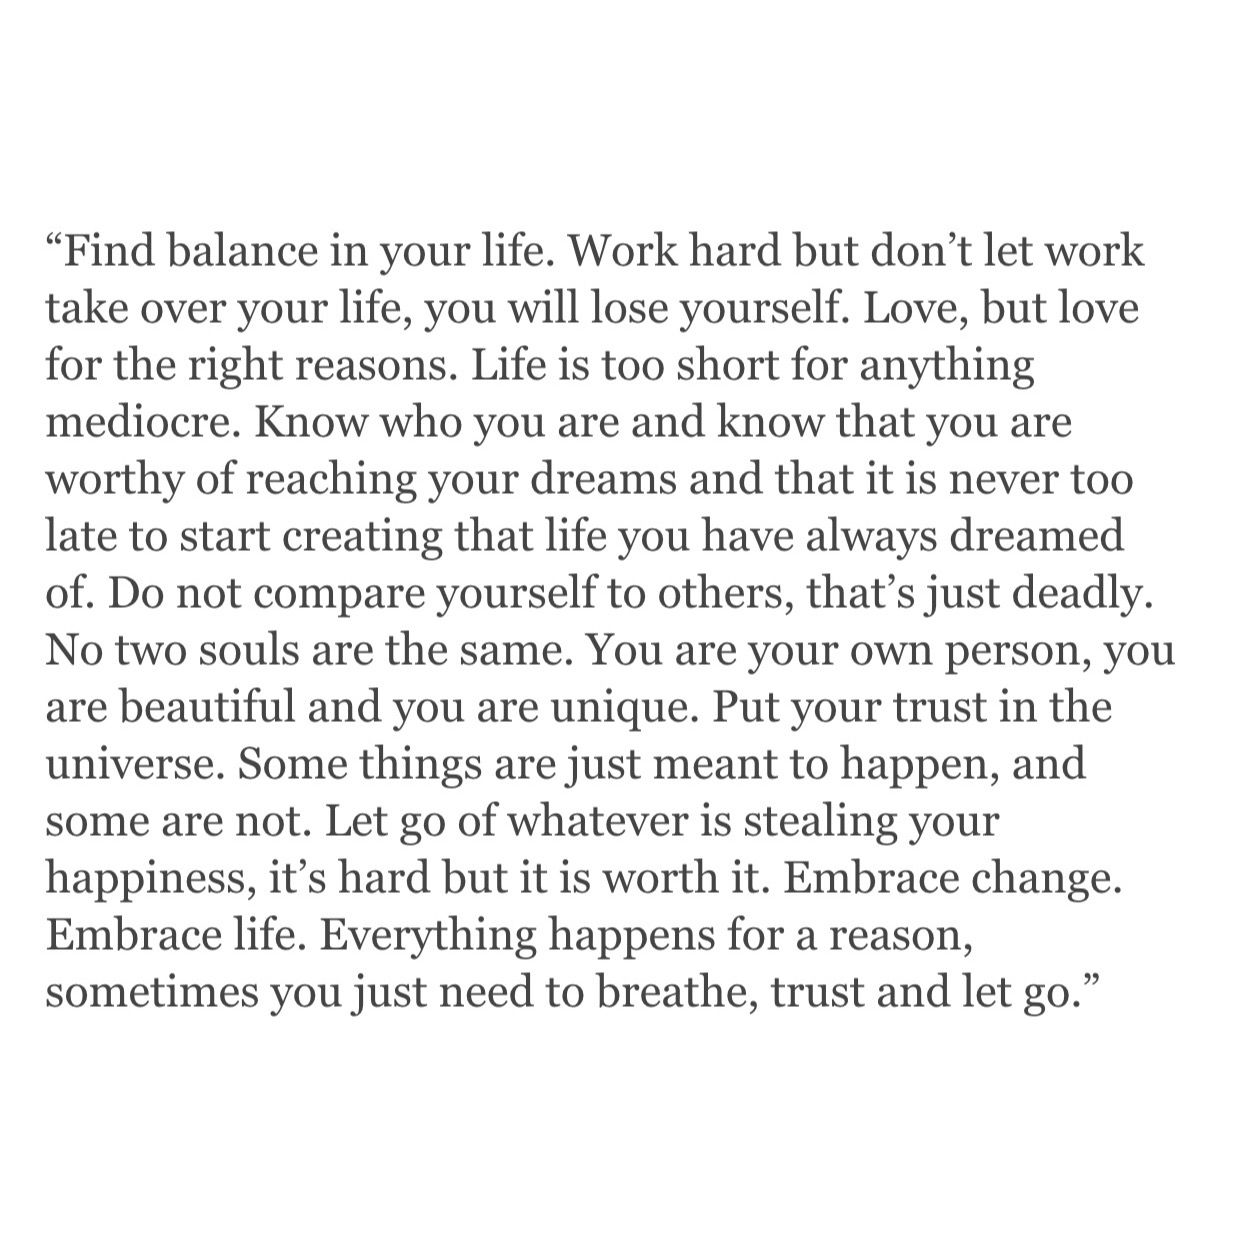 find balance breathe trust and let go i love this from beginning to end